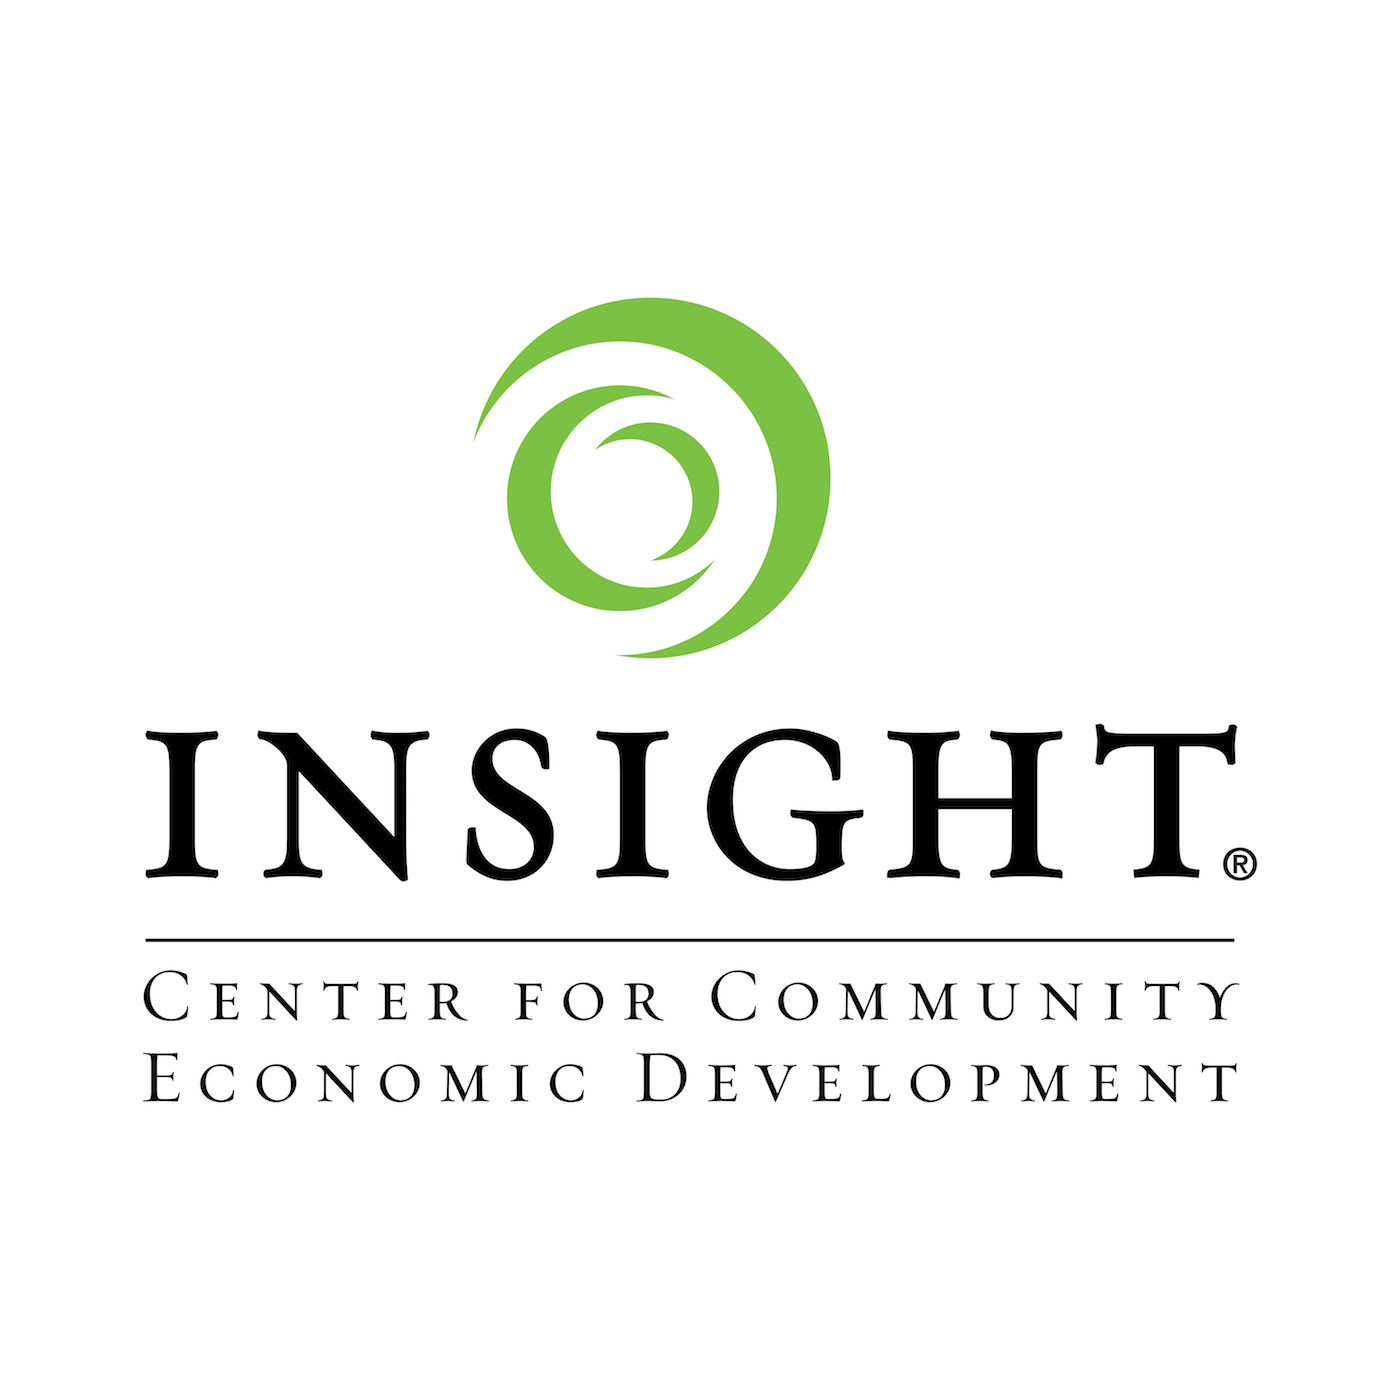 Insight Center for Community Economic Development logo